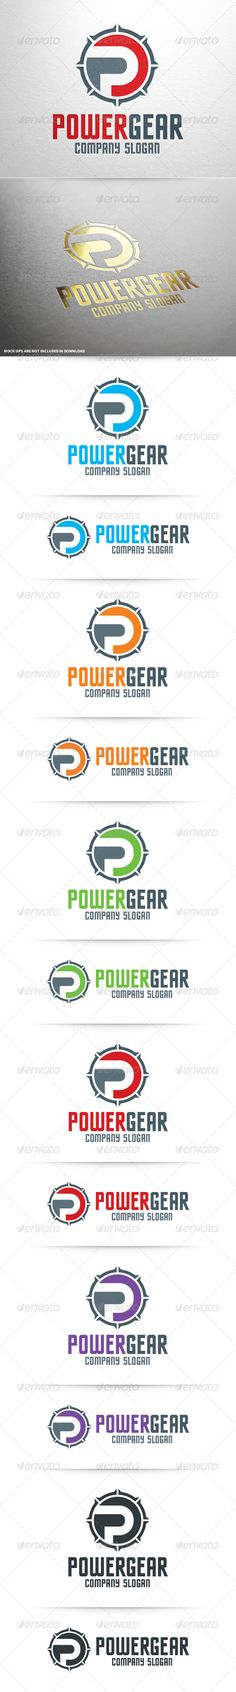 Security letters logo shirt clipart png royalty free library Just What are the Ideal Security Cameras To Use in a Business to ... png royalty free library